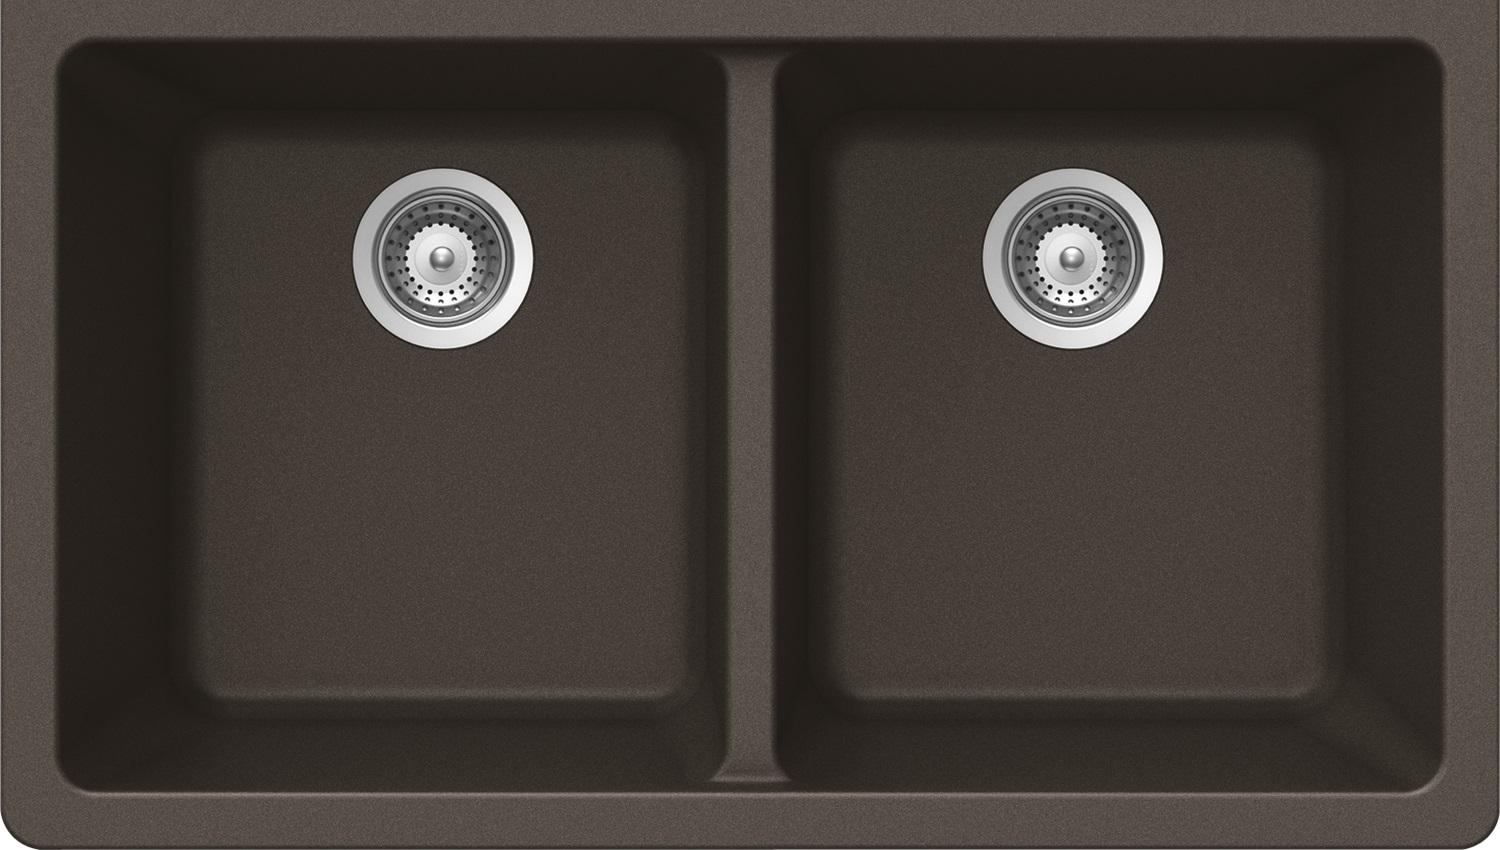 sinksu201d the ano german made granite composite sinks is made from 80 natural stone material and 20 acrylic resins there are a number of colored - Granite Composite Sinks